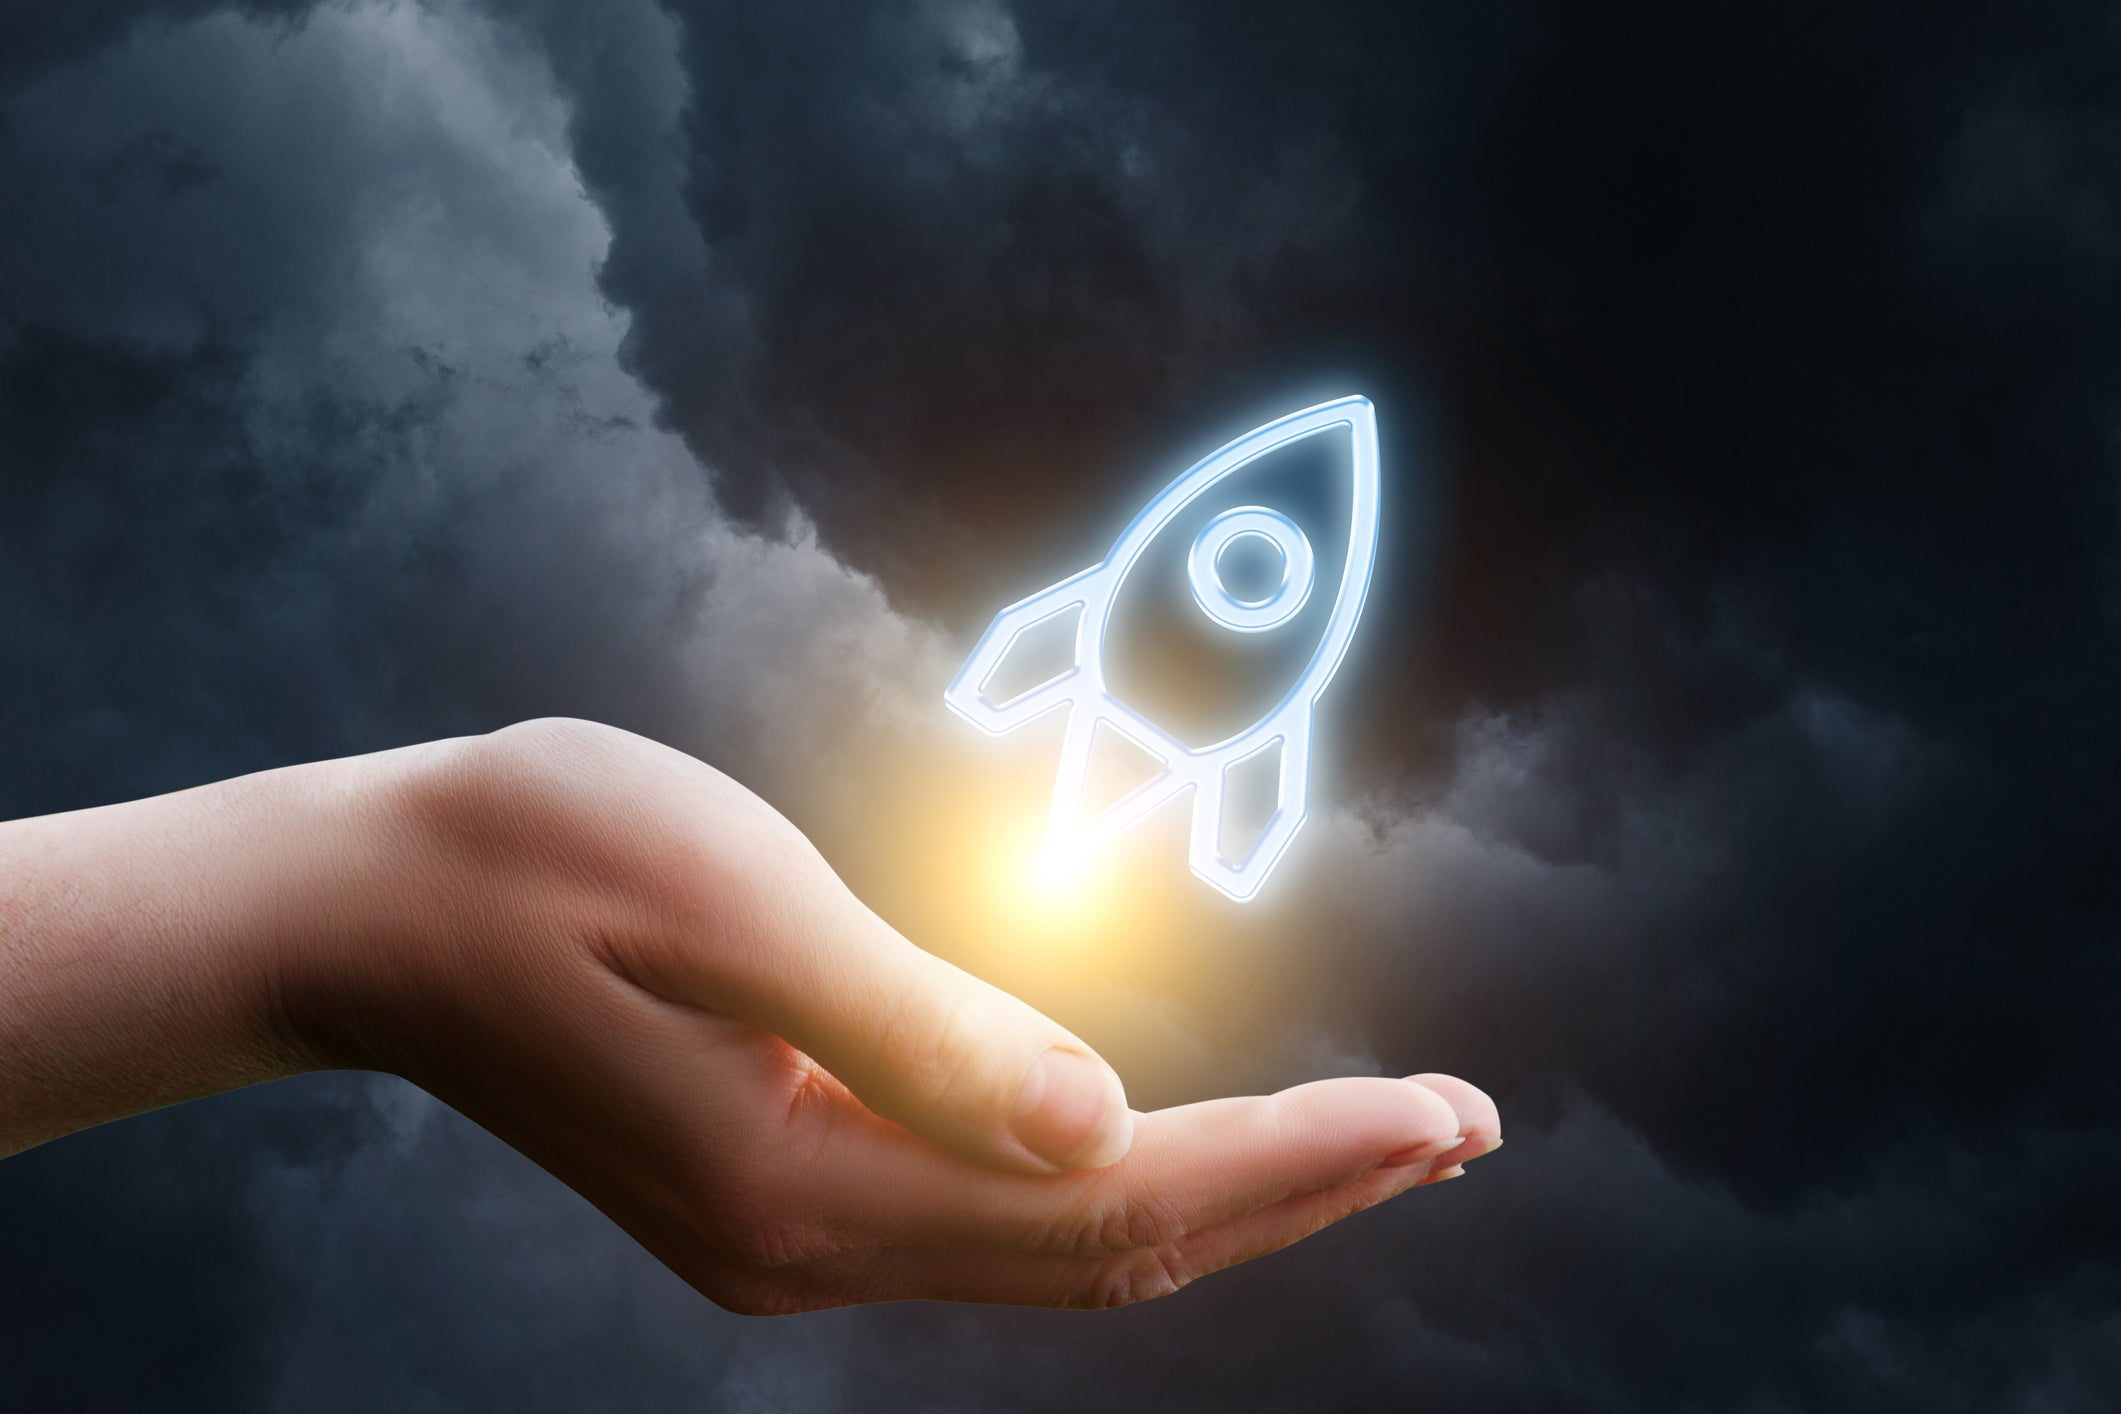 A drawing of a rocketship blasting off from a person's hand.